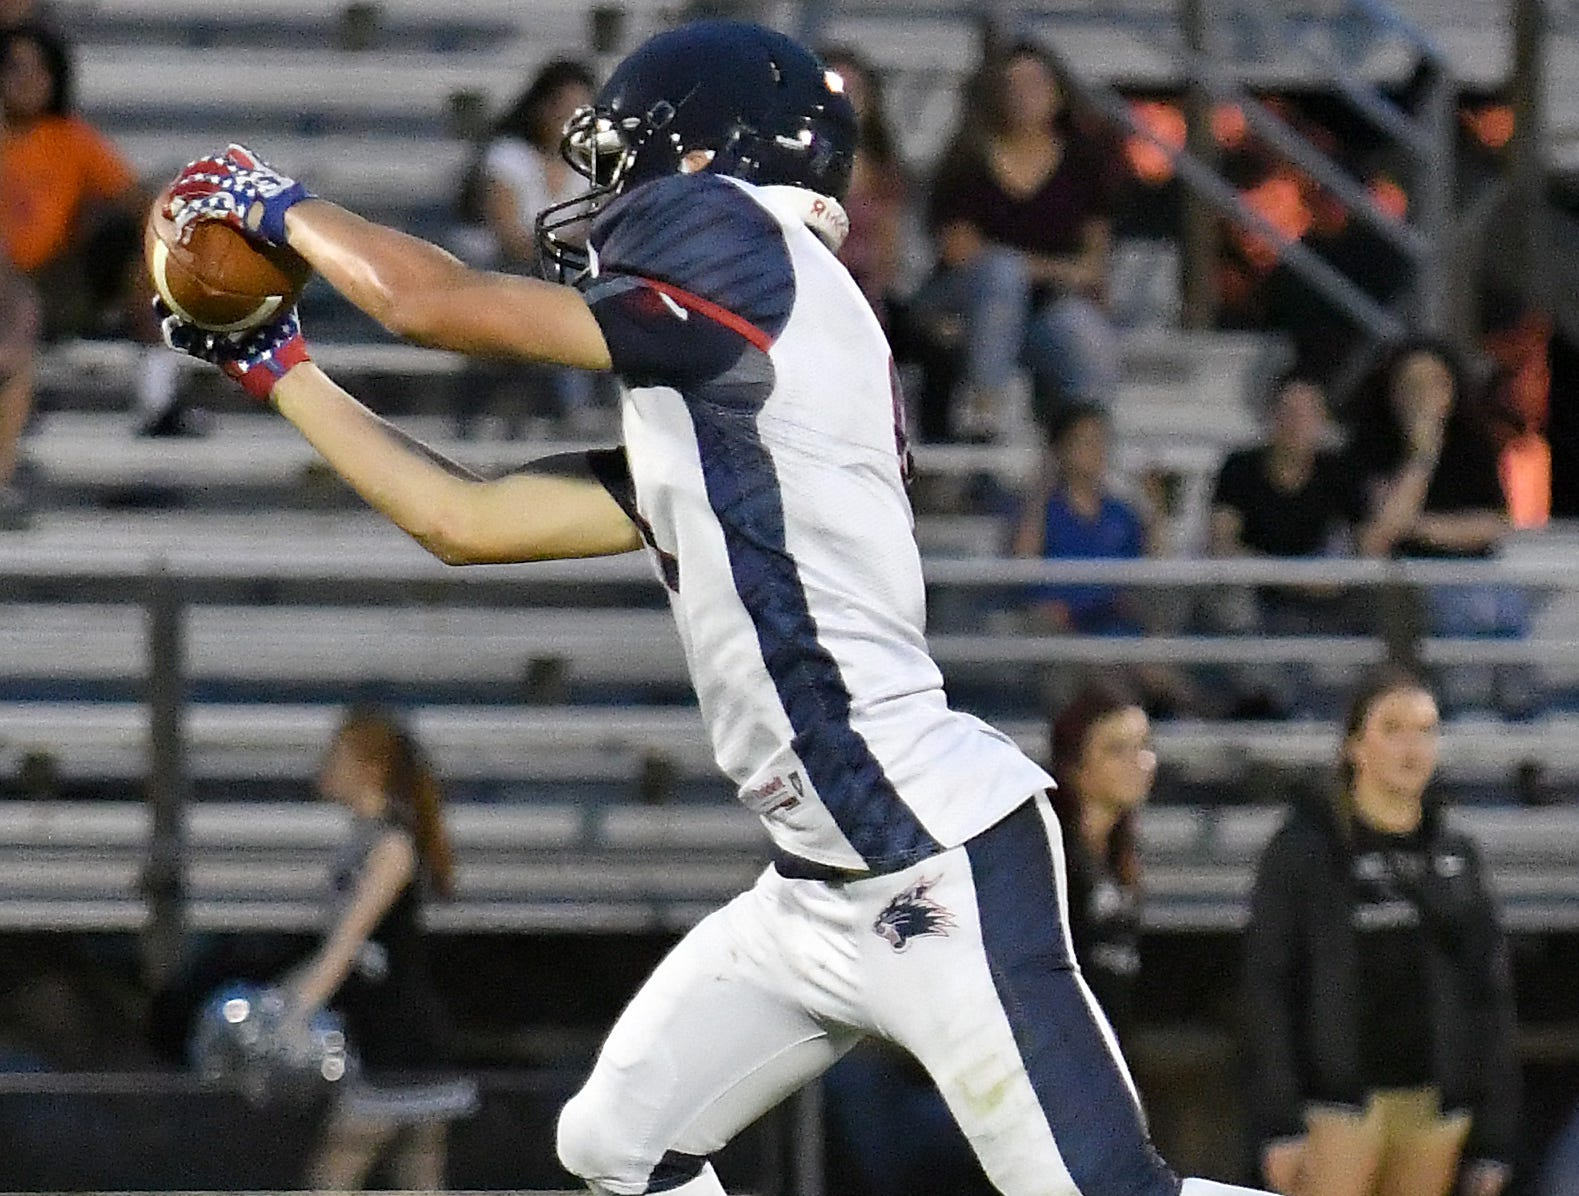 Estero High School wide receiver back Ehan Montgomery (9) catches a pass  during their game with Mariner High School in Cape Coral Monday, Aug. 27, 2018.